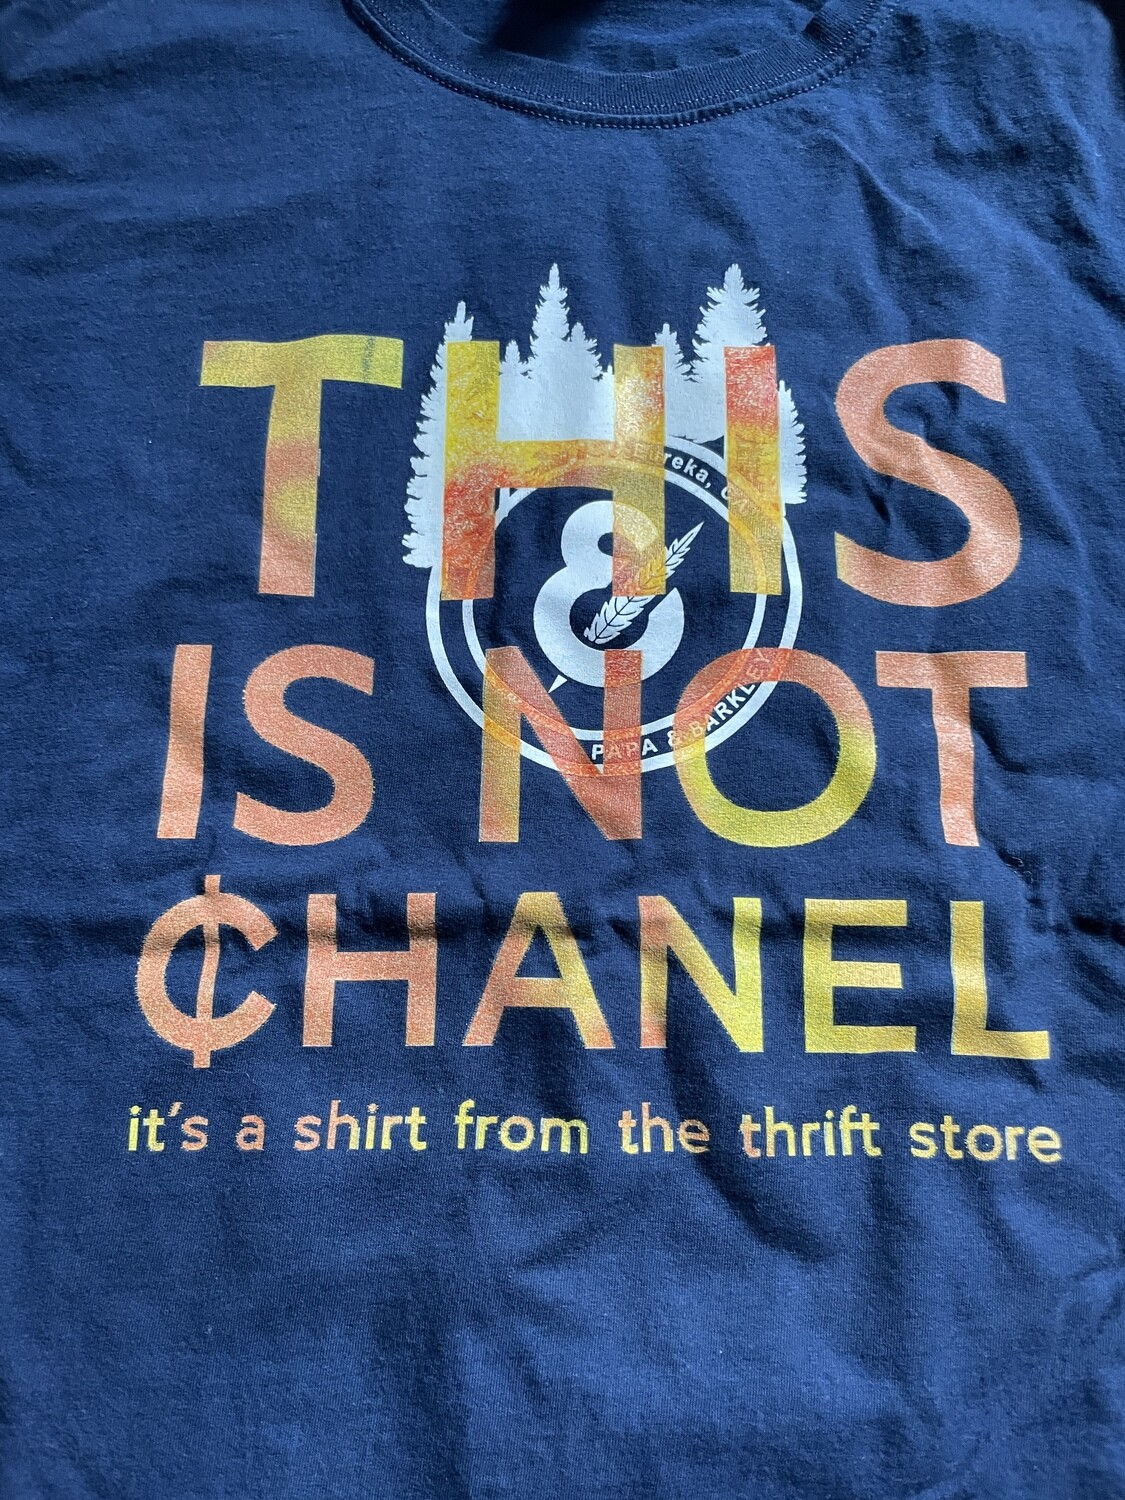 This Is Not ¢hanel - NFC clothing - Papa & Barkley Navy Shirt